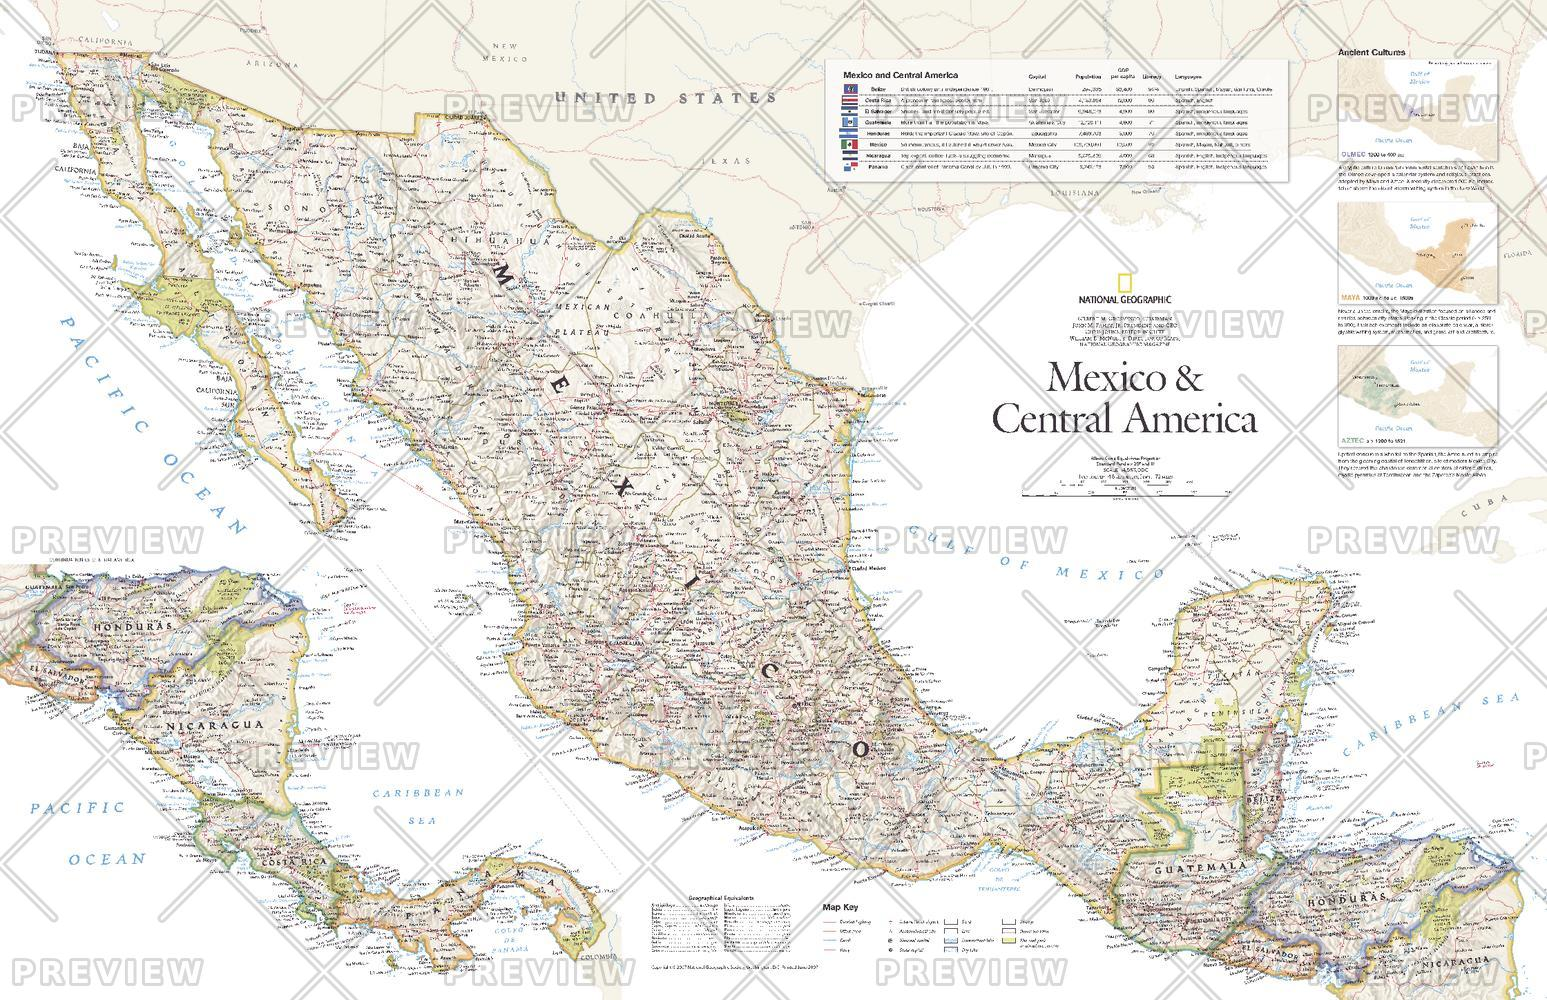 Mexico and Central America - Published 2007